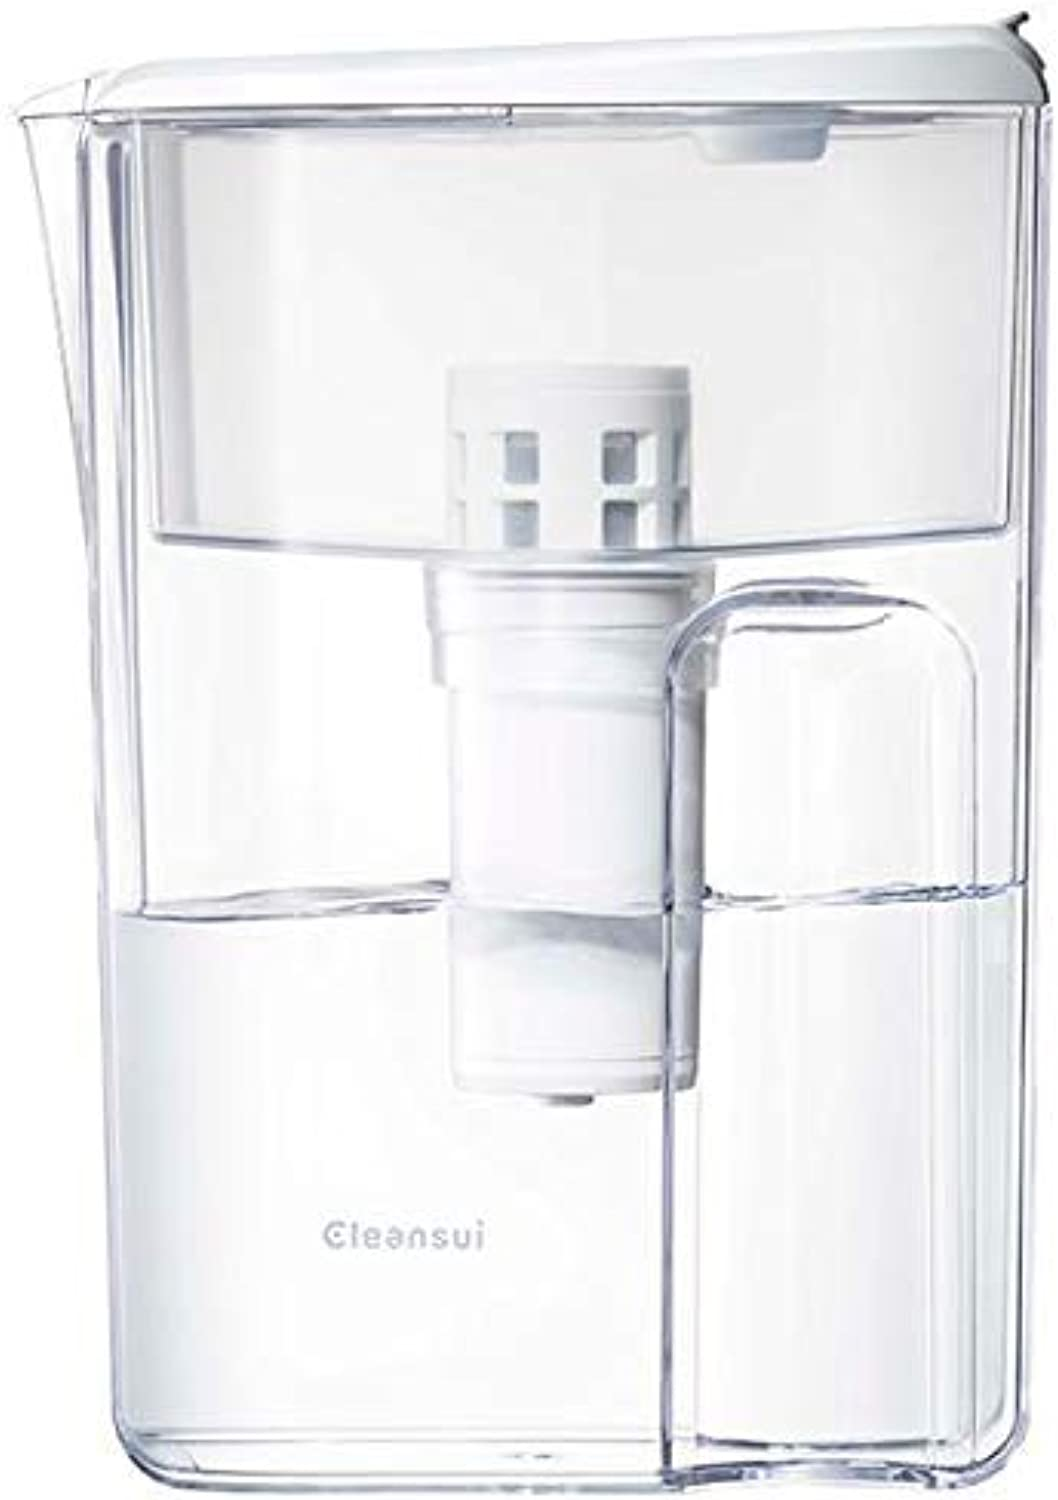 Mitsubishi Cleansui 9-Cup Microfiltration Water Pitcher ACP407